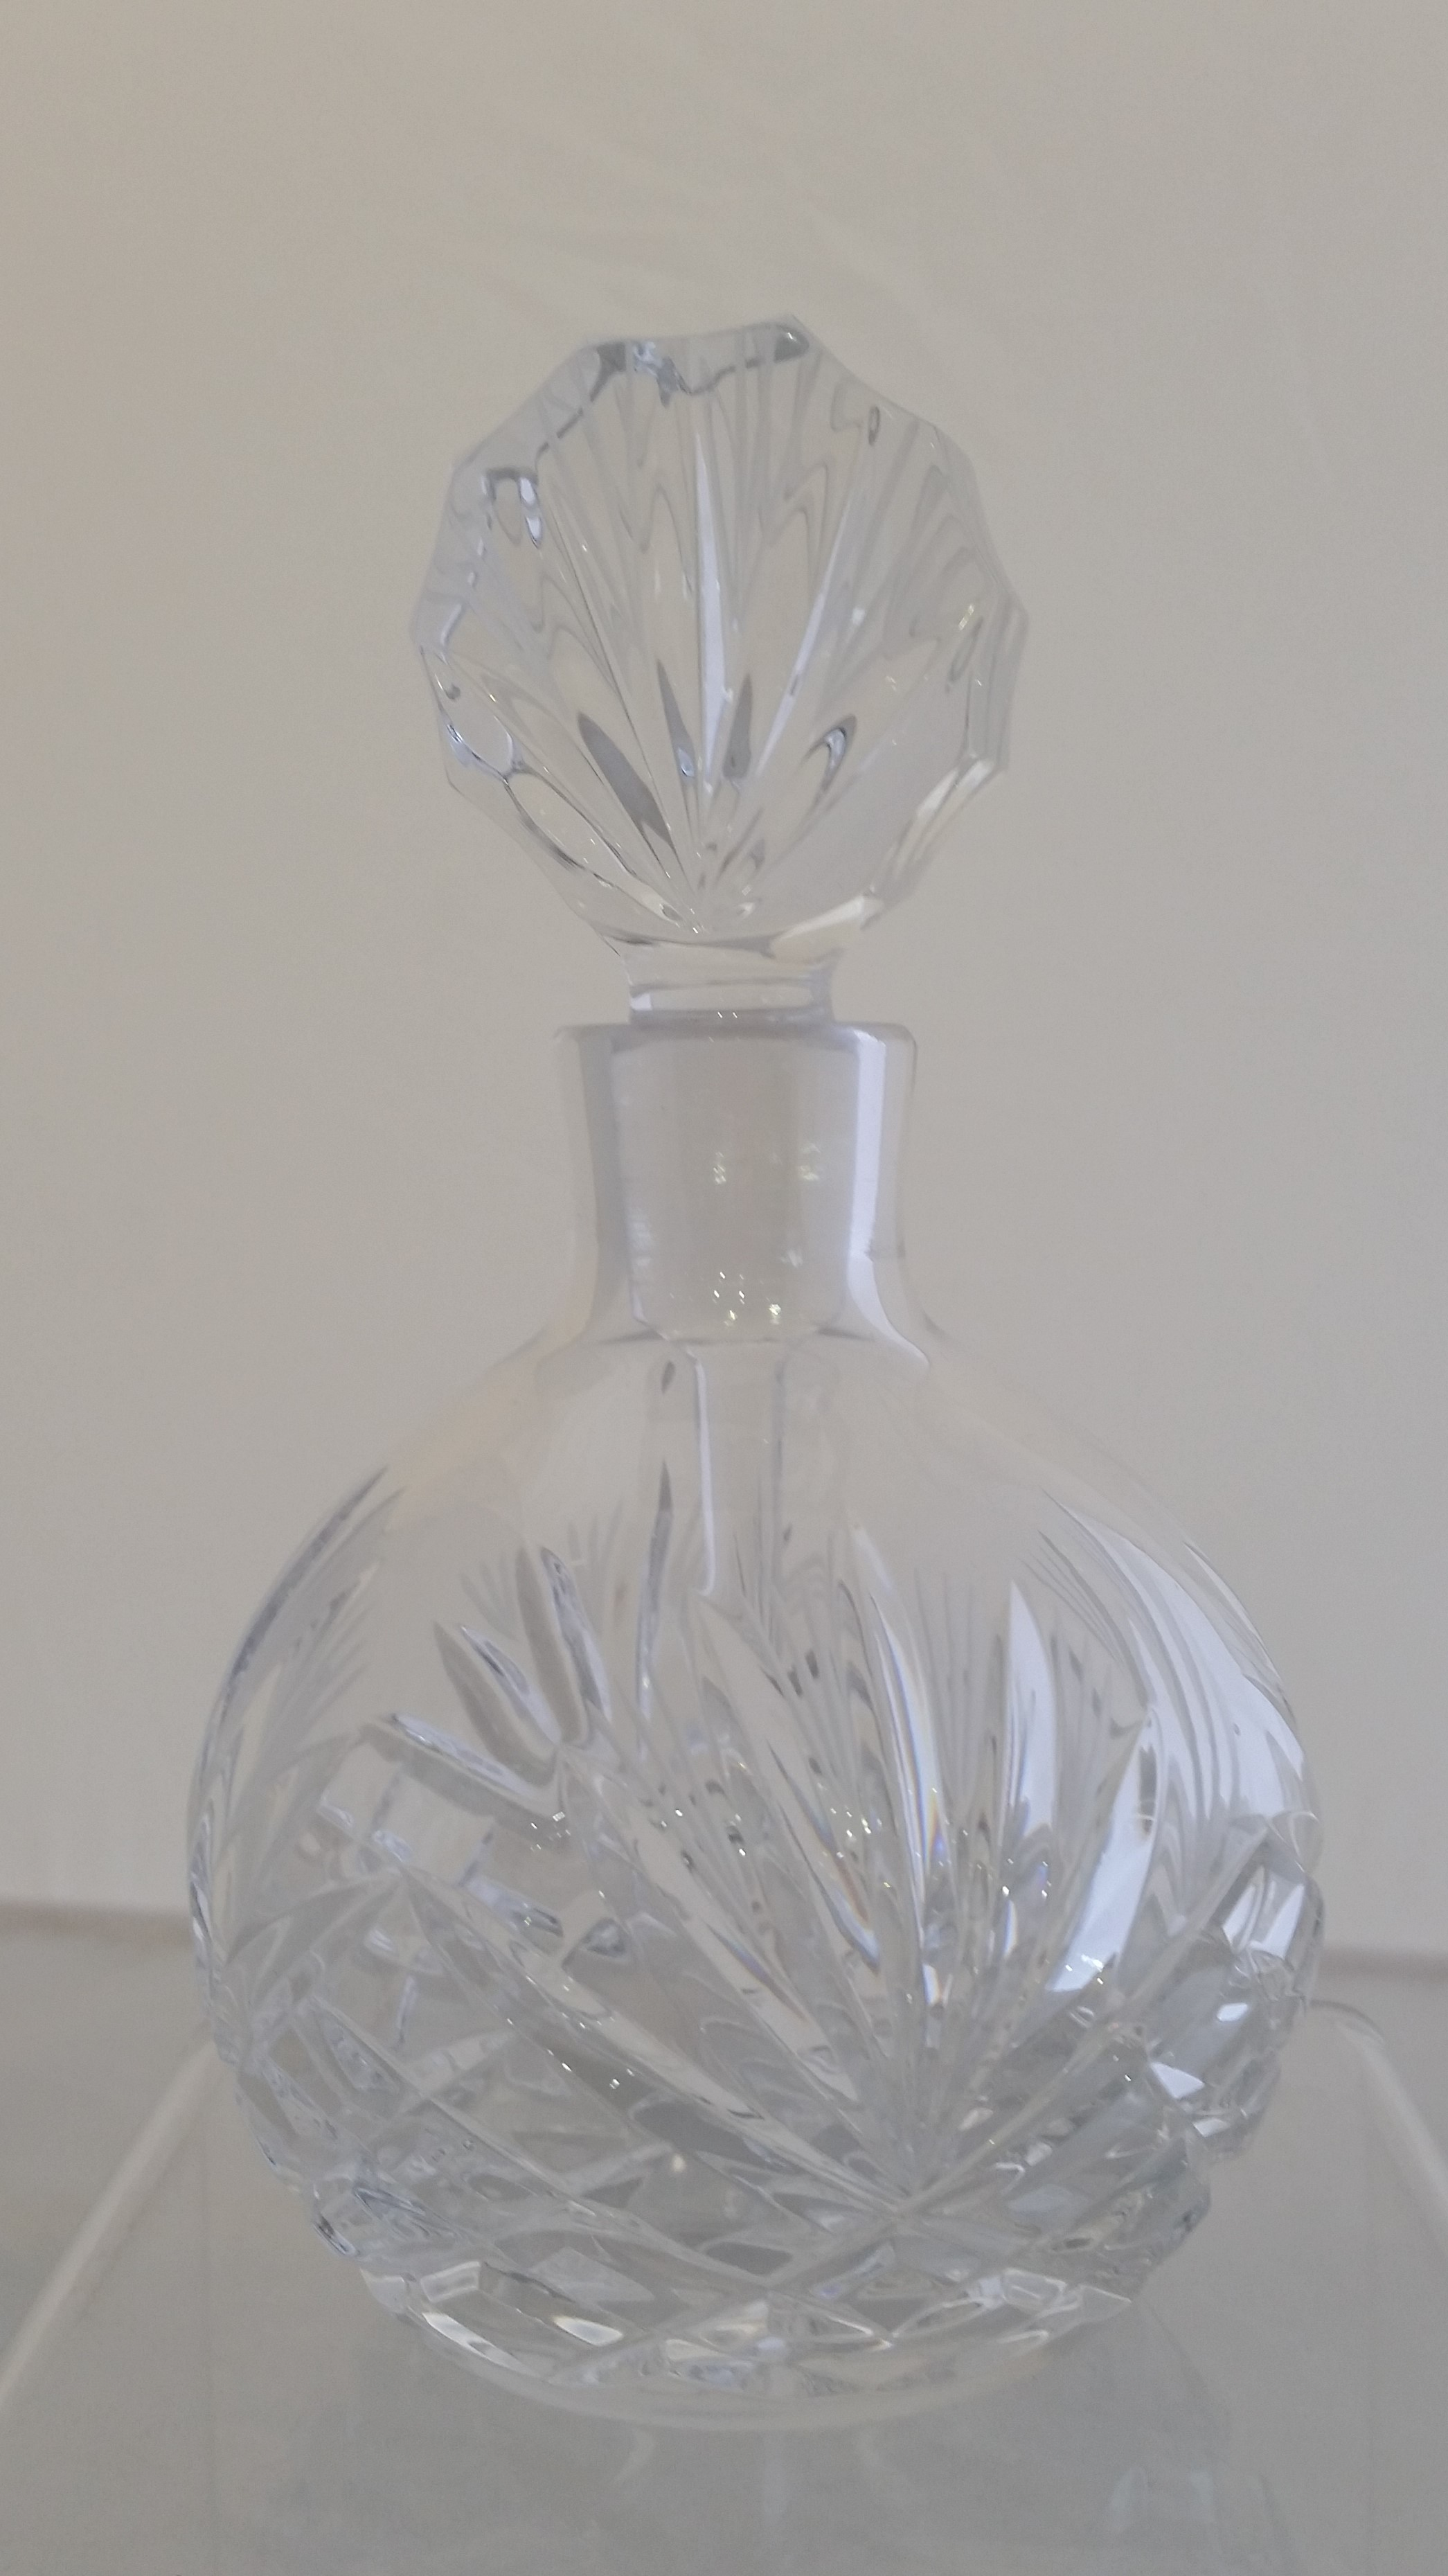 Majestic Gifts - '24% Lead Crystal' - Perfume Bottle- #MA823